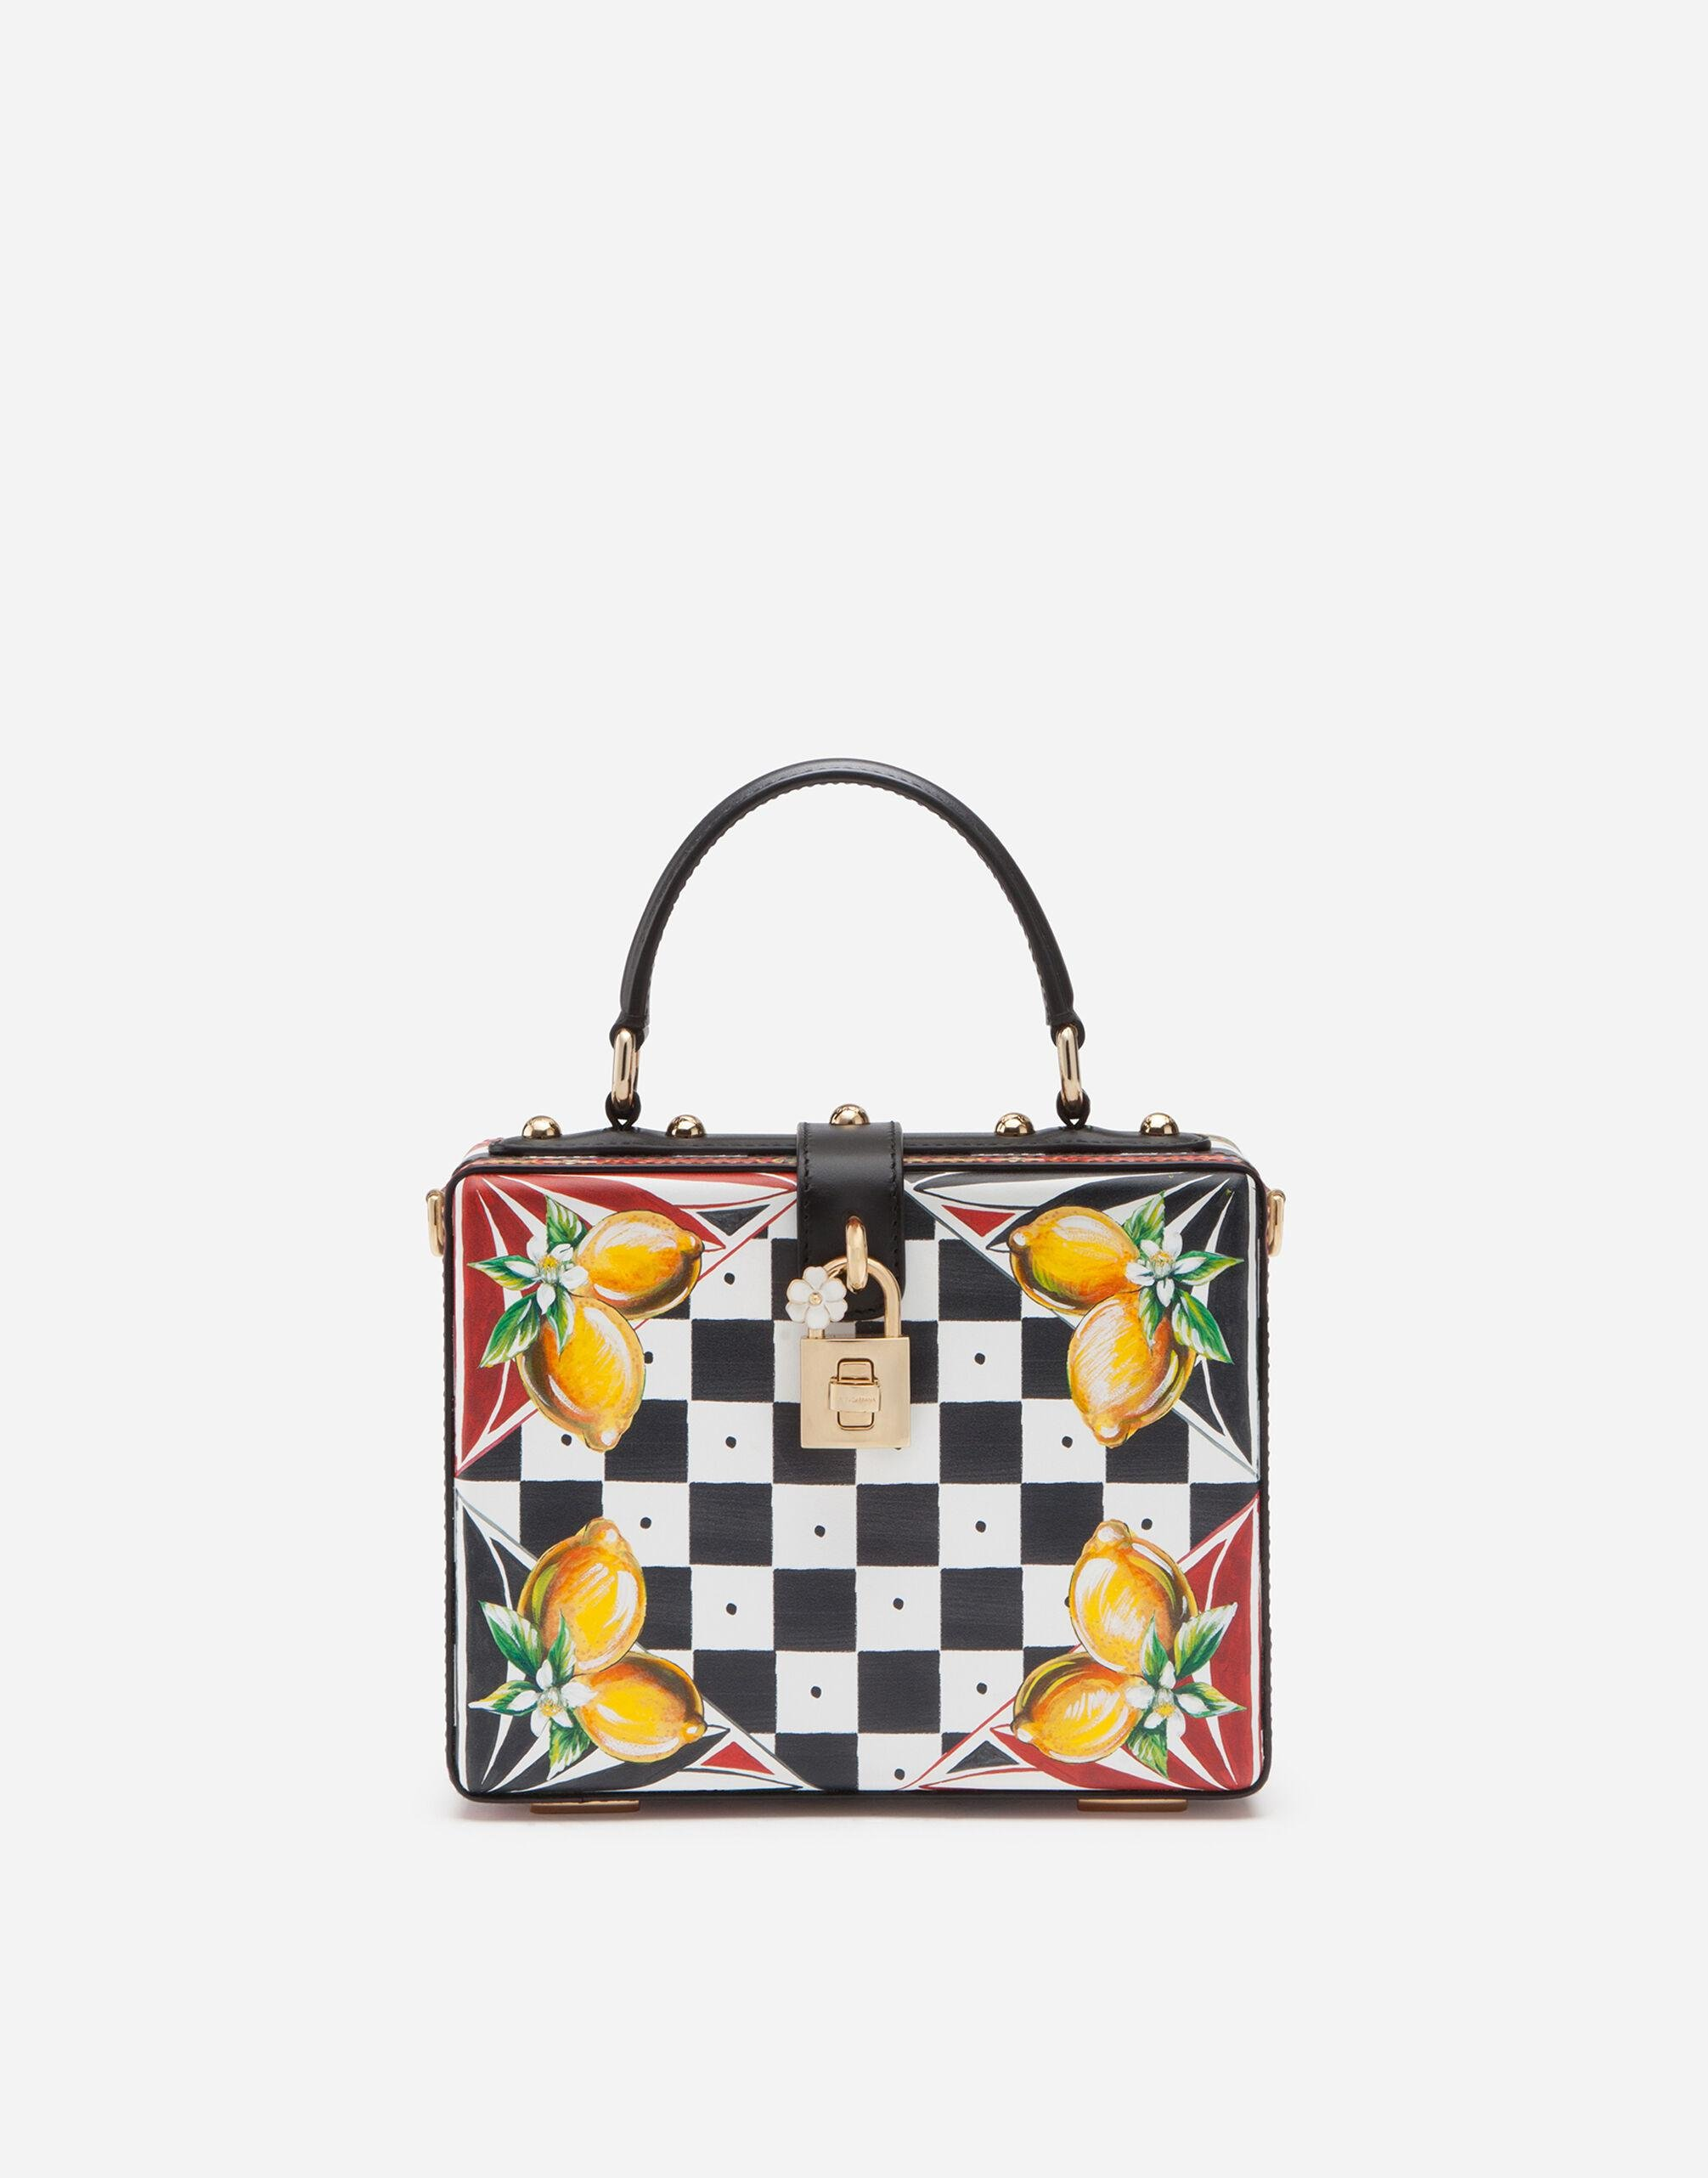 Dauphine calfskin Dolce Box bag with Carretto and lemon print